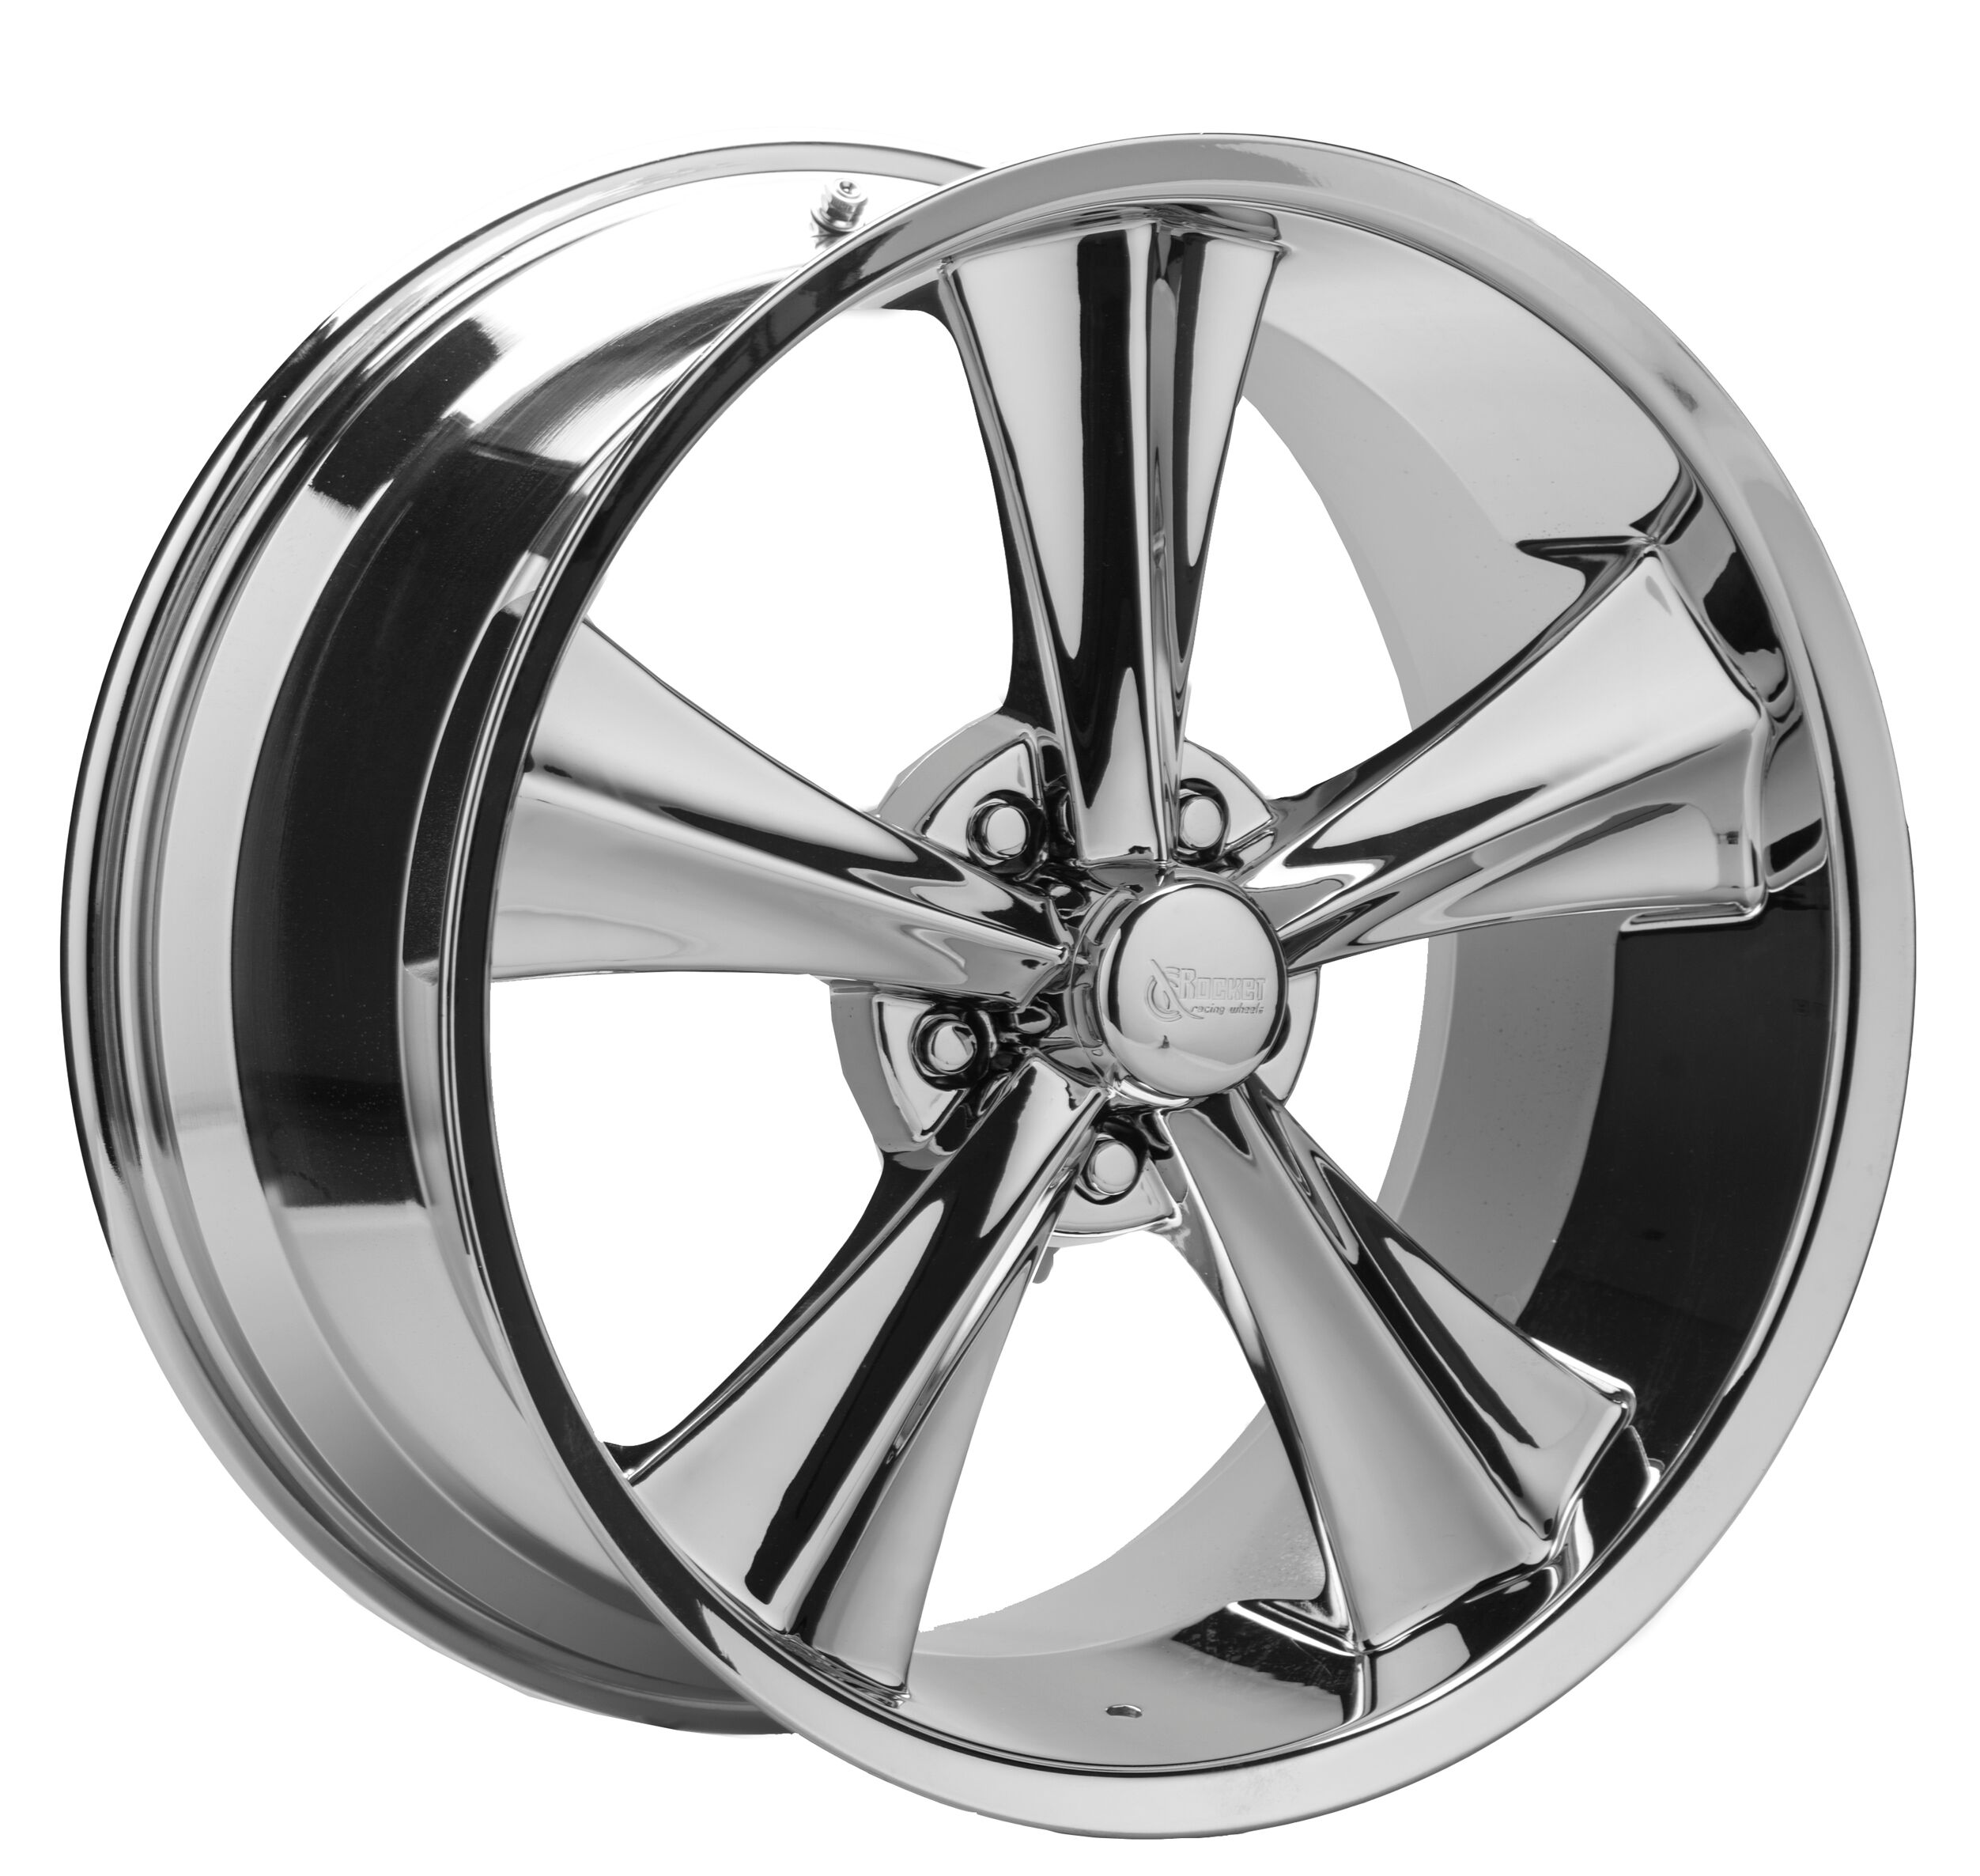 Rocket Racing Wheels Booster Modern Muscle - Chrome Rim